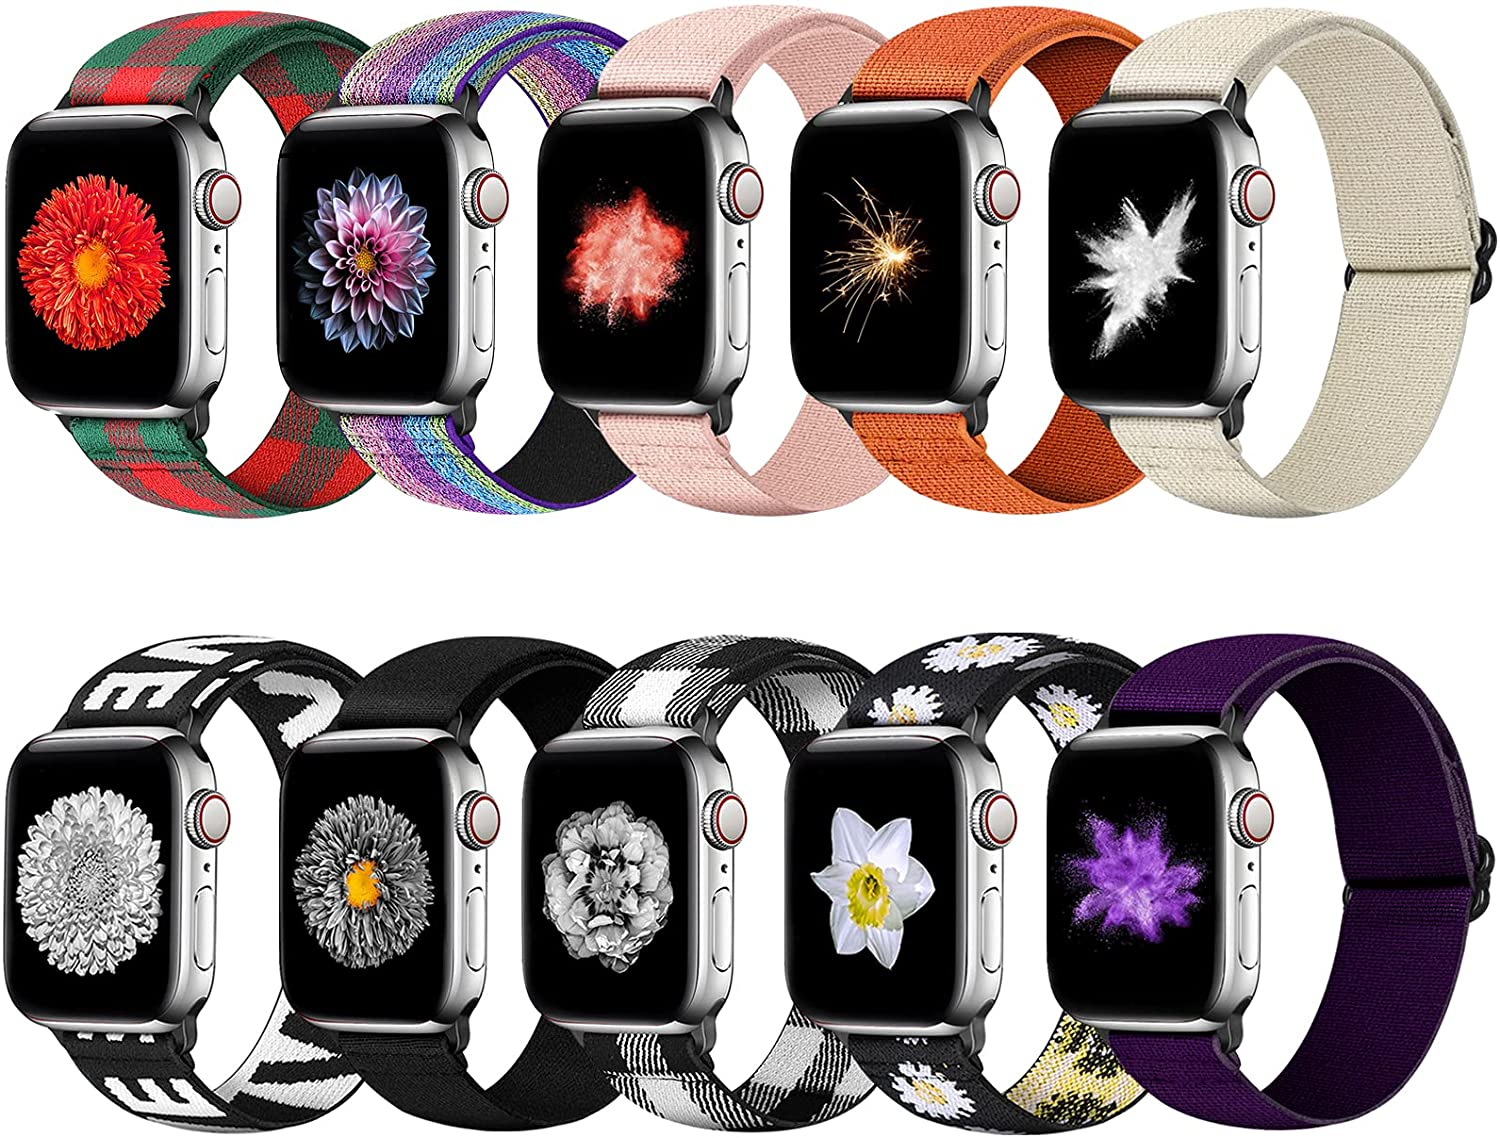 Tiptops 10 PACK Watch Band Compatible with Apple Watch Band 38mm 40mm 41mm 42mm 44mm 45mm, Elastic Adjustable Length, Stretch Nylon Sports Watch Strap, Compatible with iWatch Bands Series SE/7/6/5/4/3/2/1 for Men Women